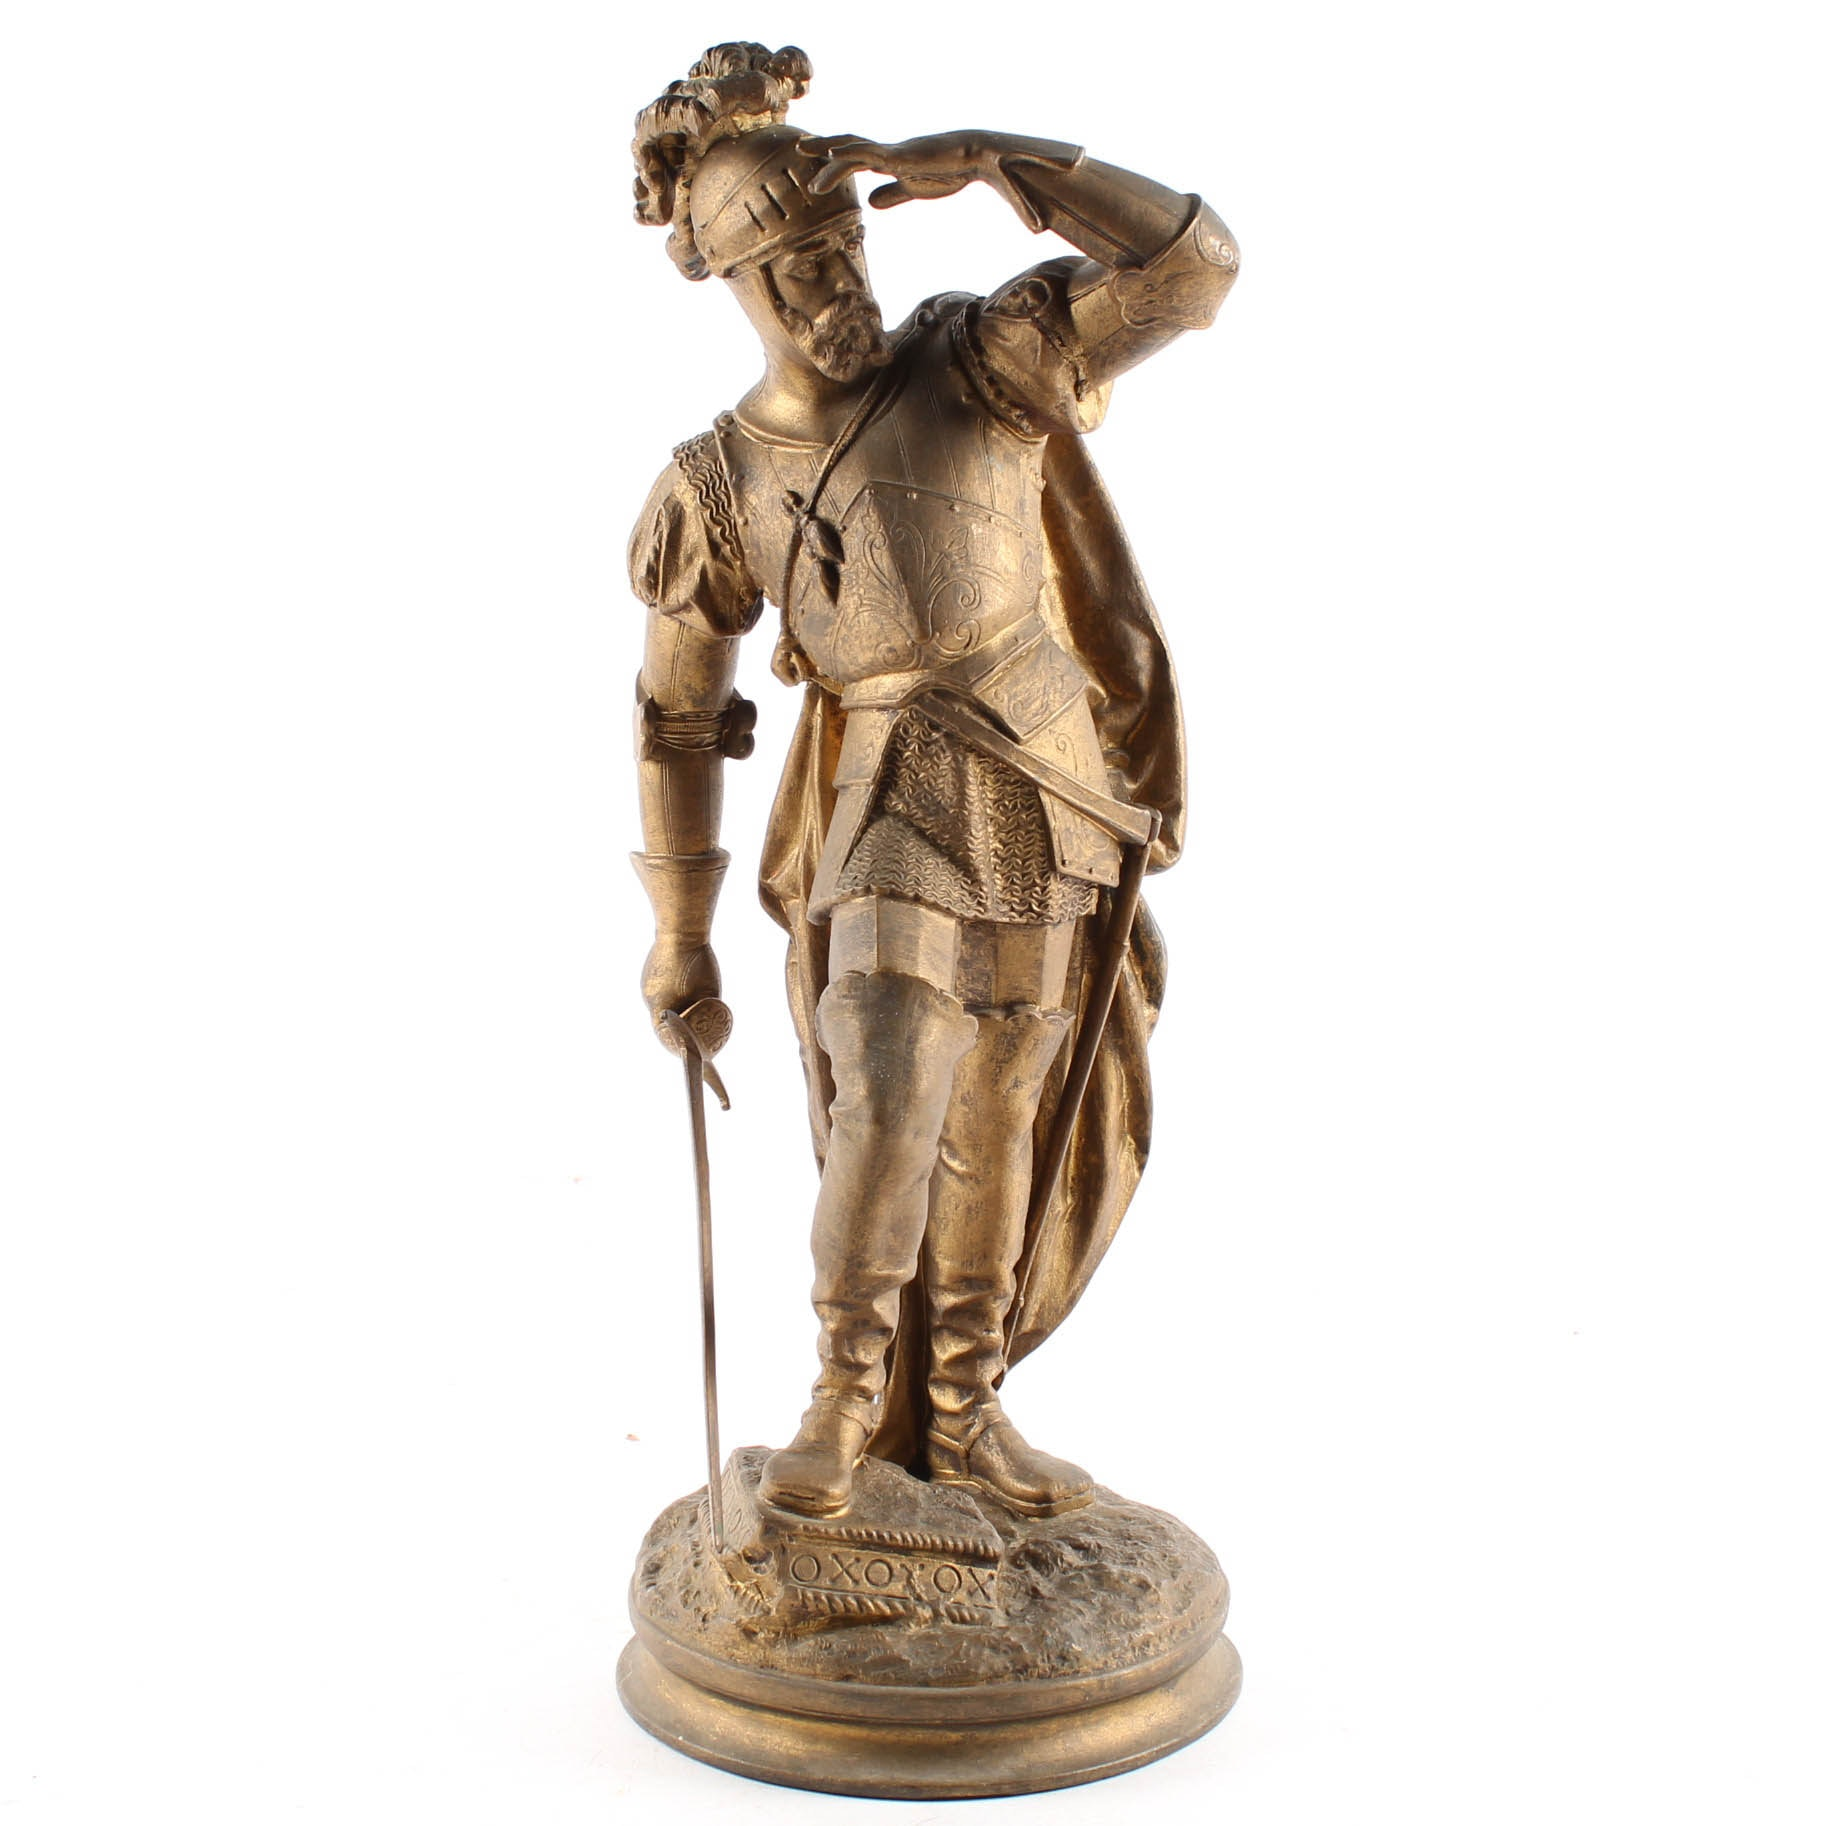 Spelter Metal Sculpture of a Conquistador